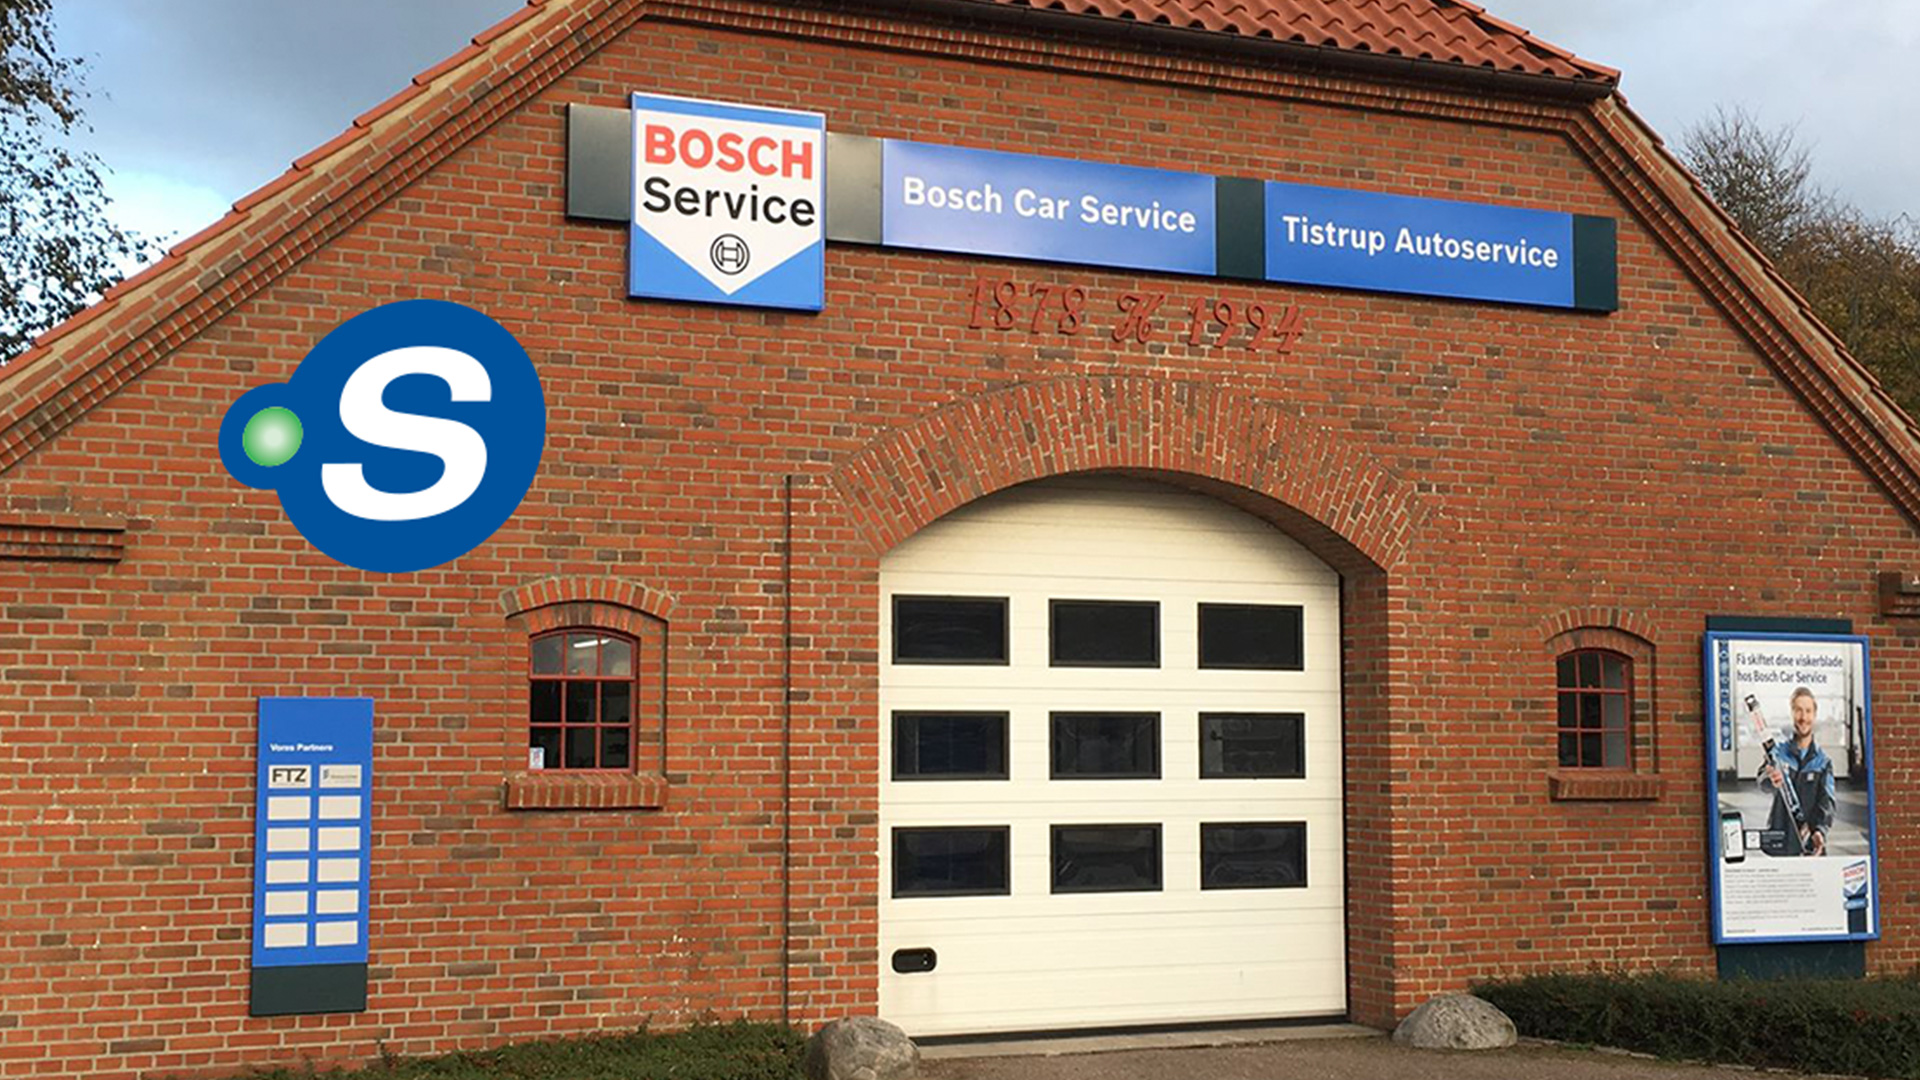 Point S Tistrup Autoservice